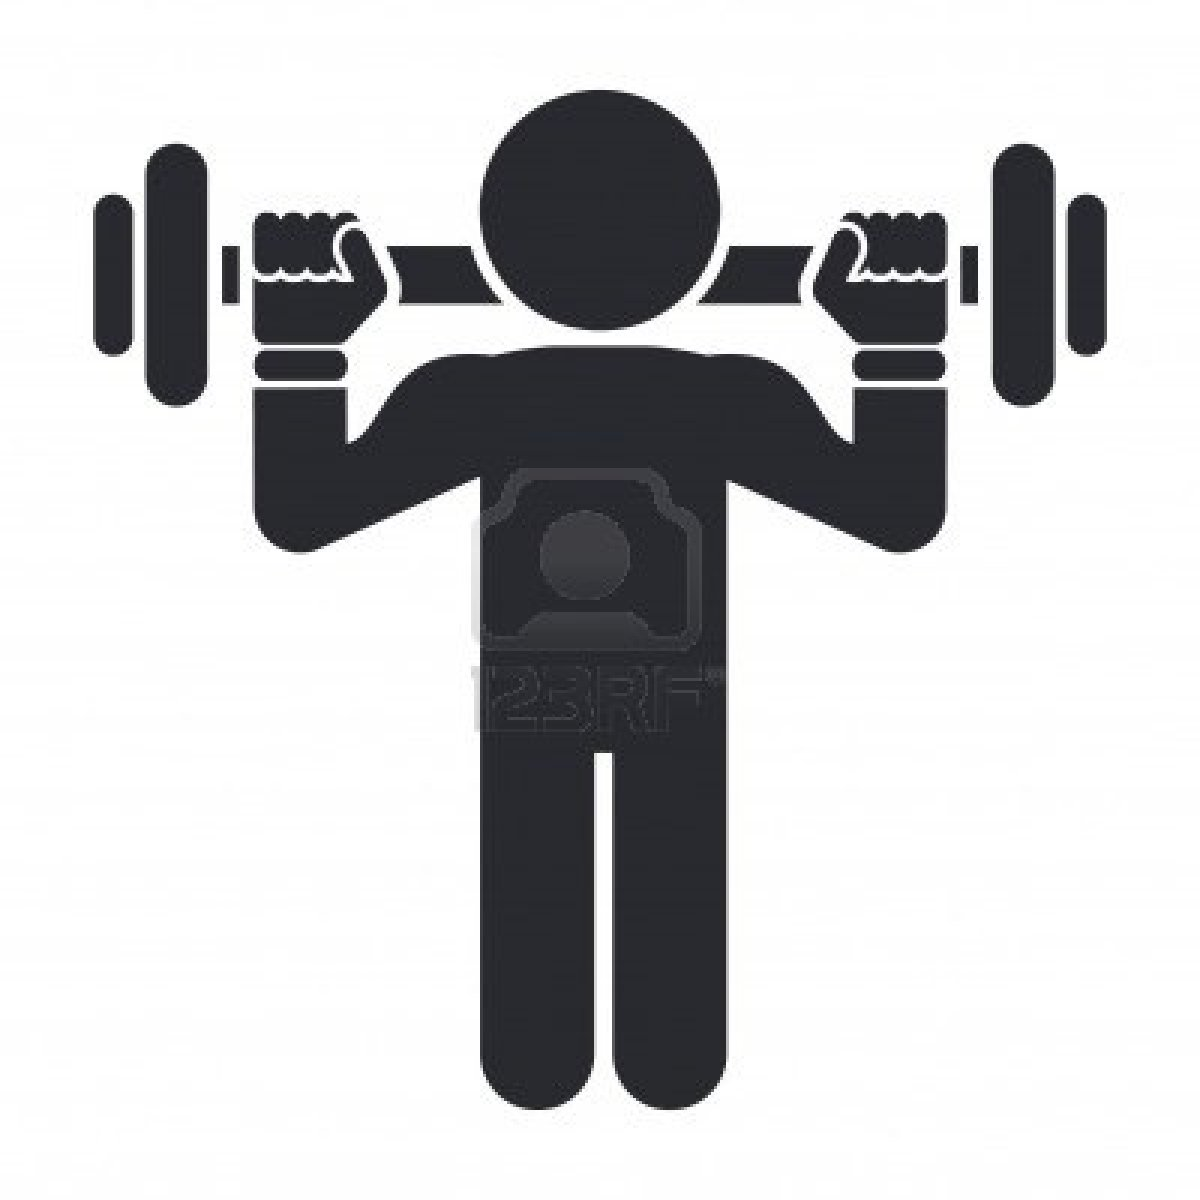 12121917-vector-illustration-of-single-isolated-gym-icon.jpg